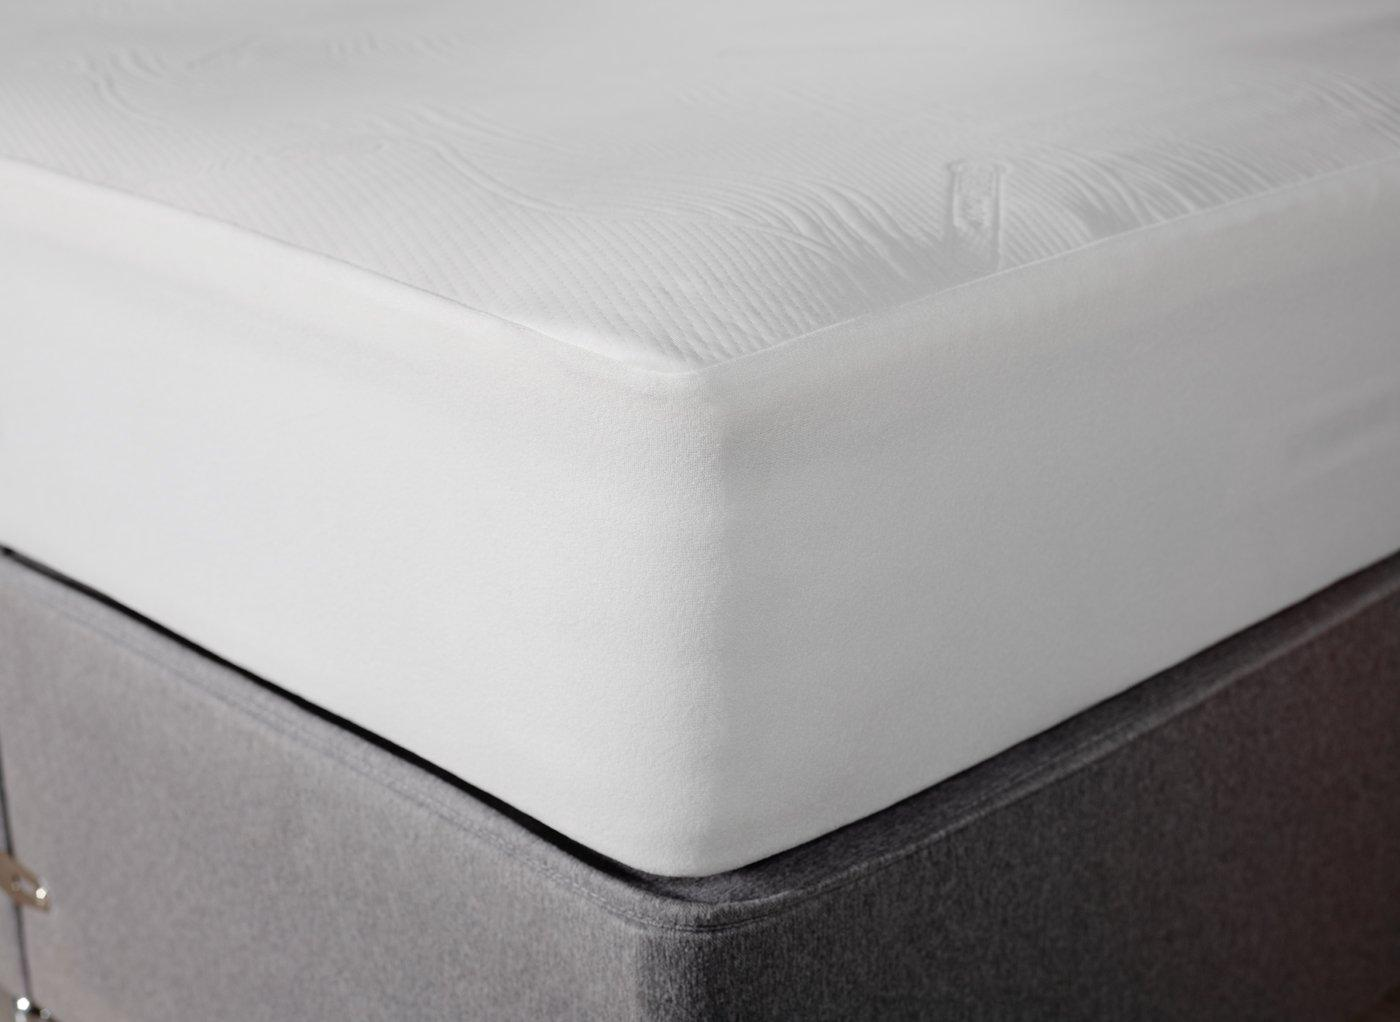 Therapur coolmax memory foam 5cm topper s 3'0 single